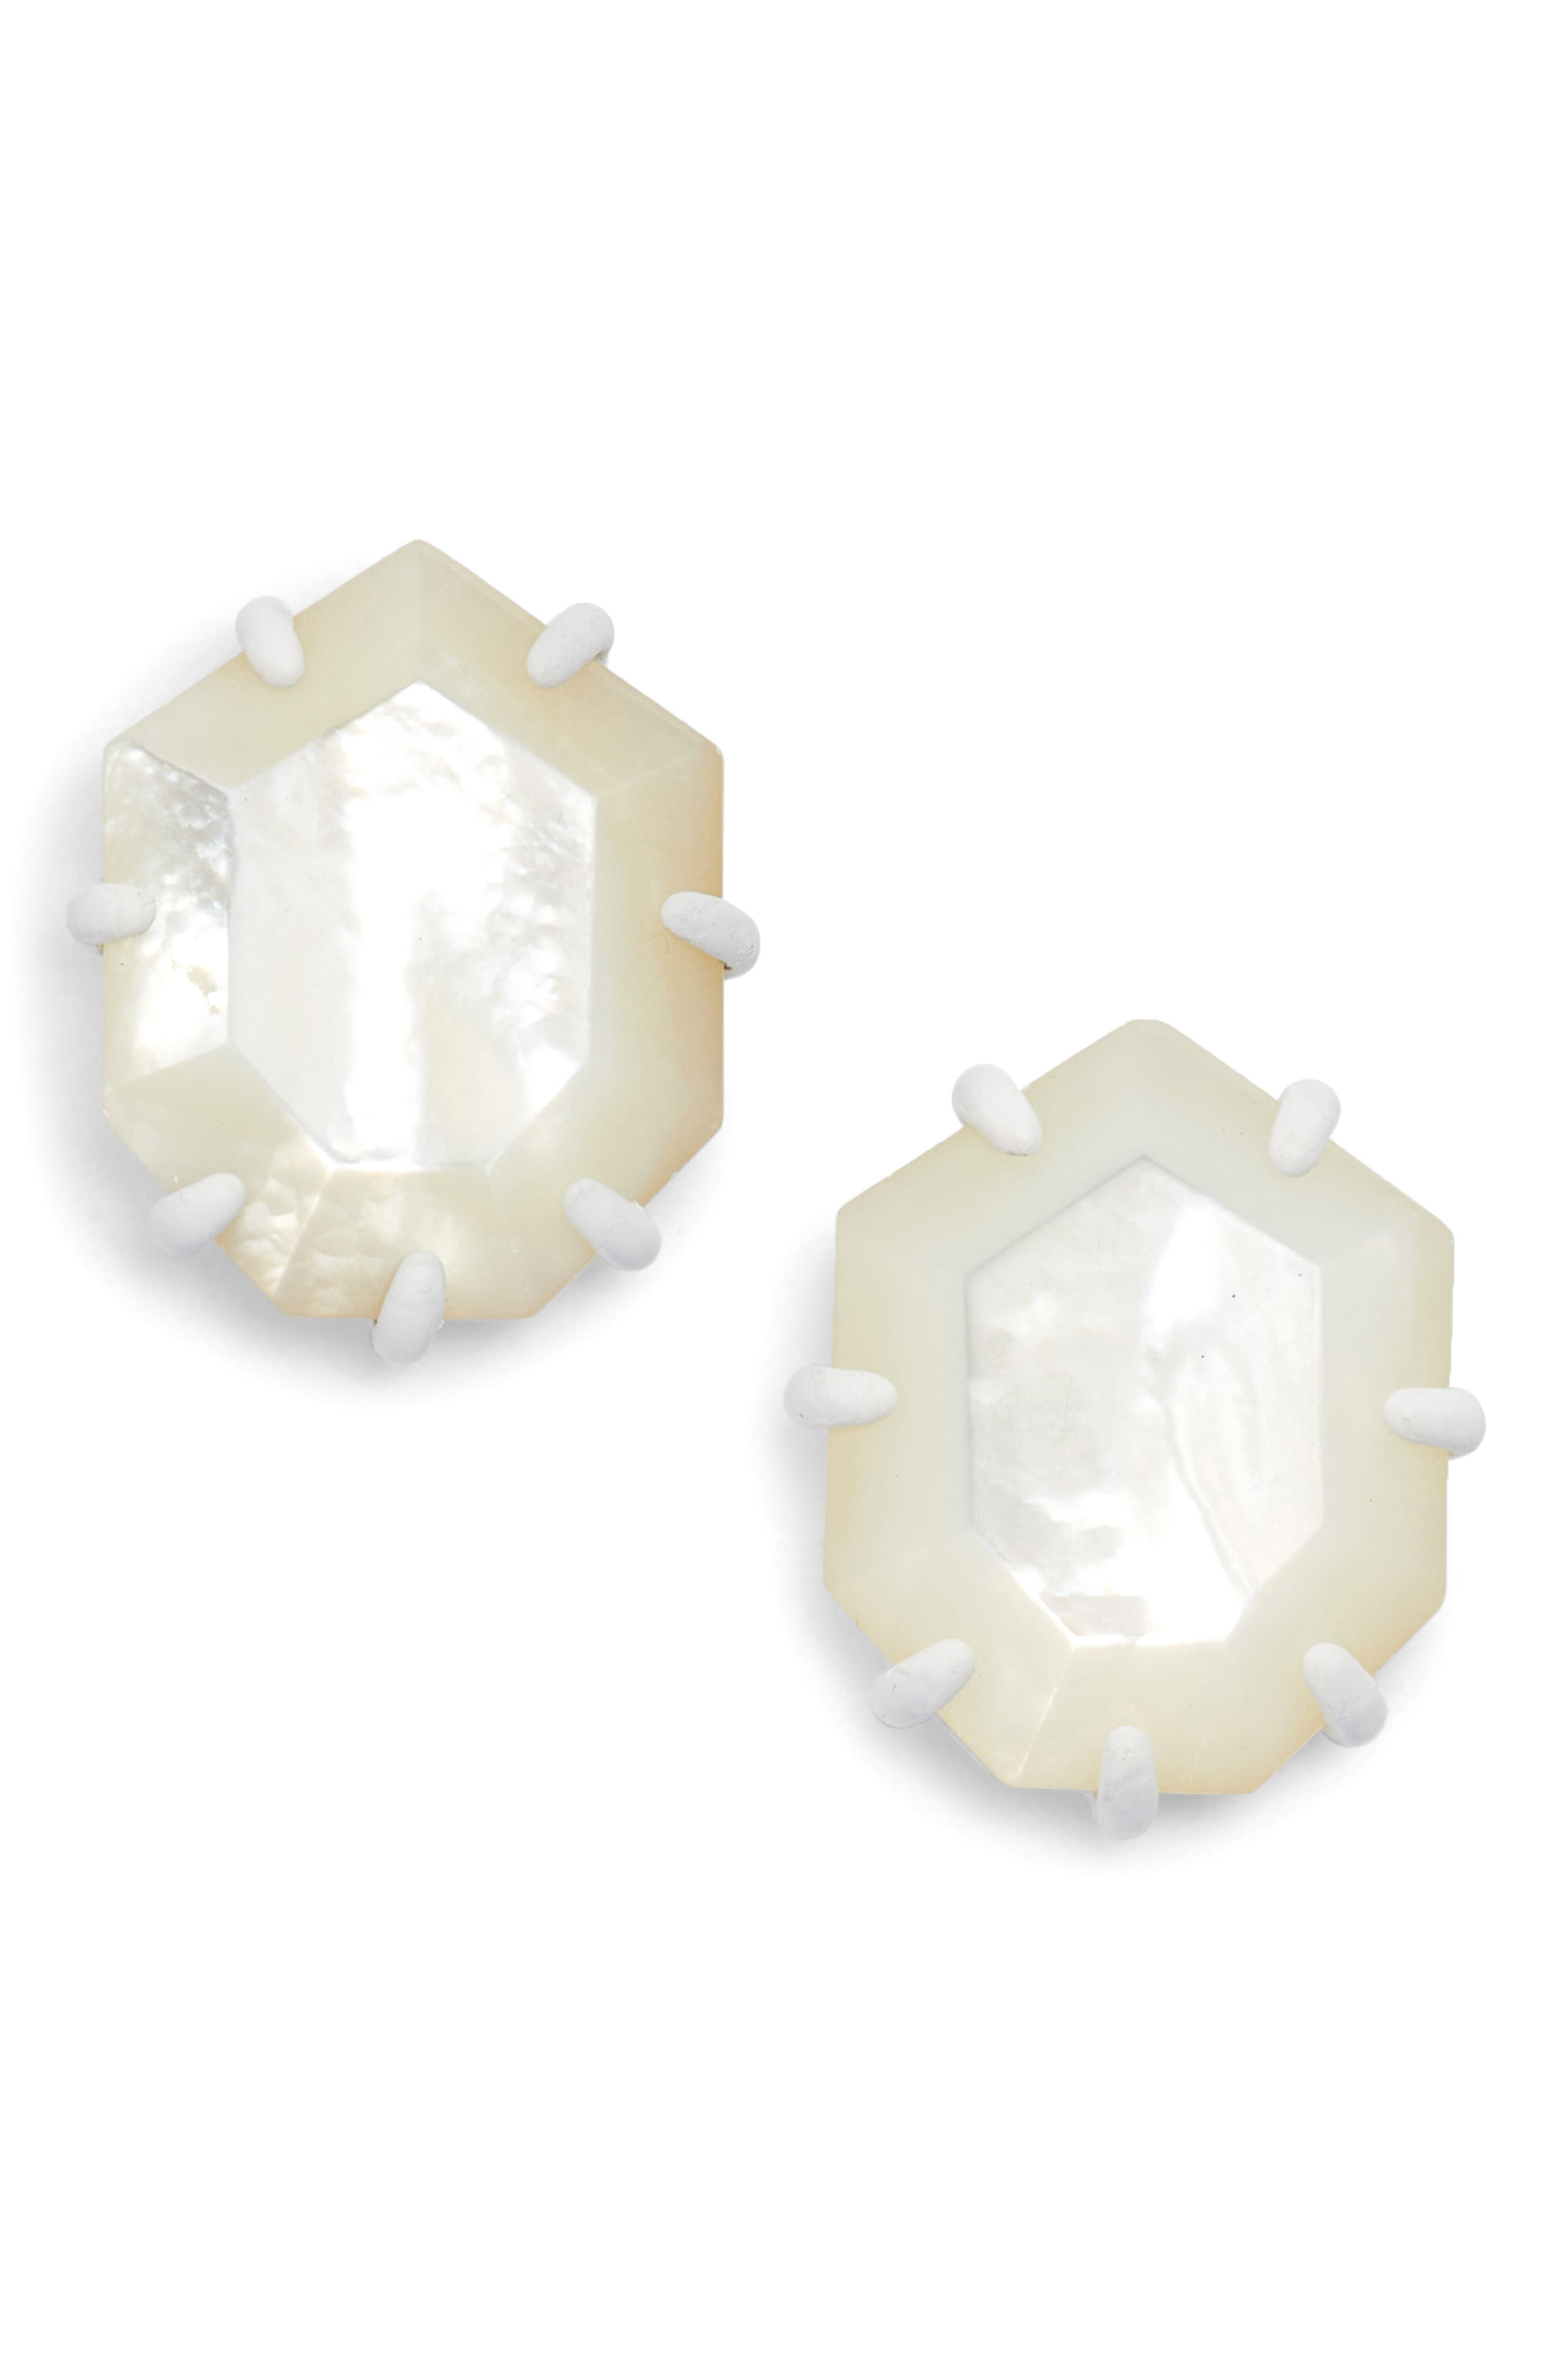 Morgan Stud Earrings,                         Main,                         color,